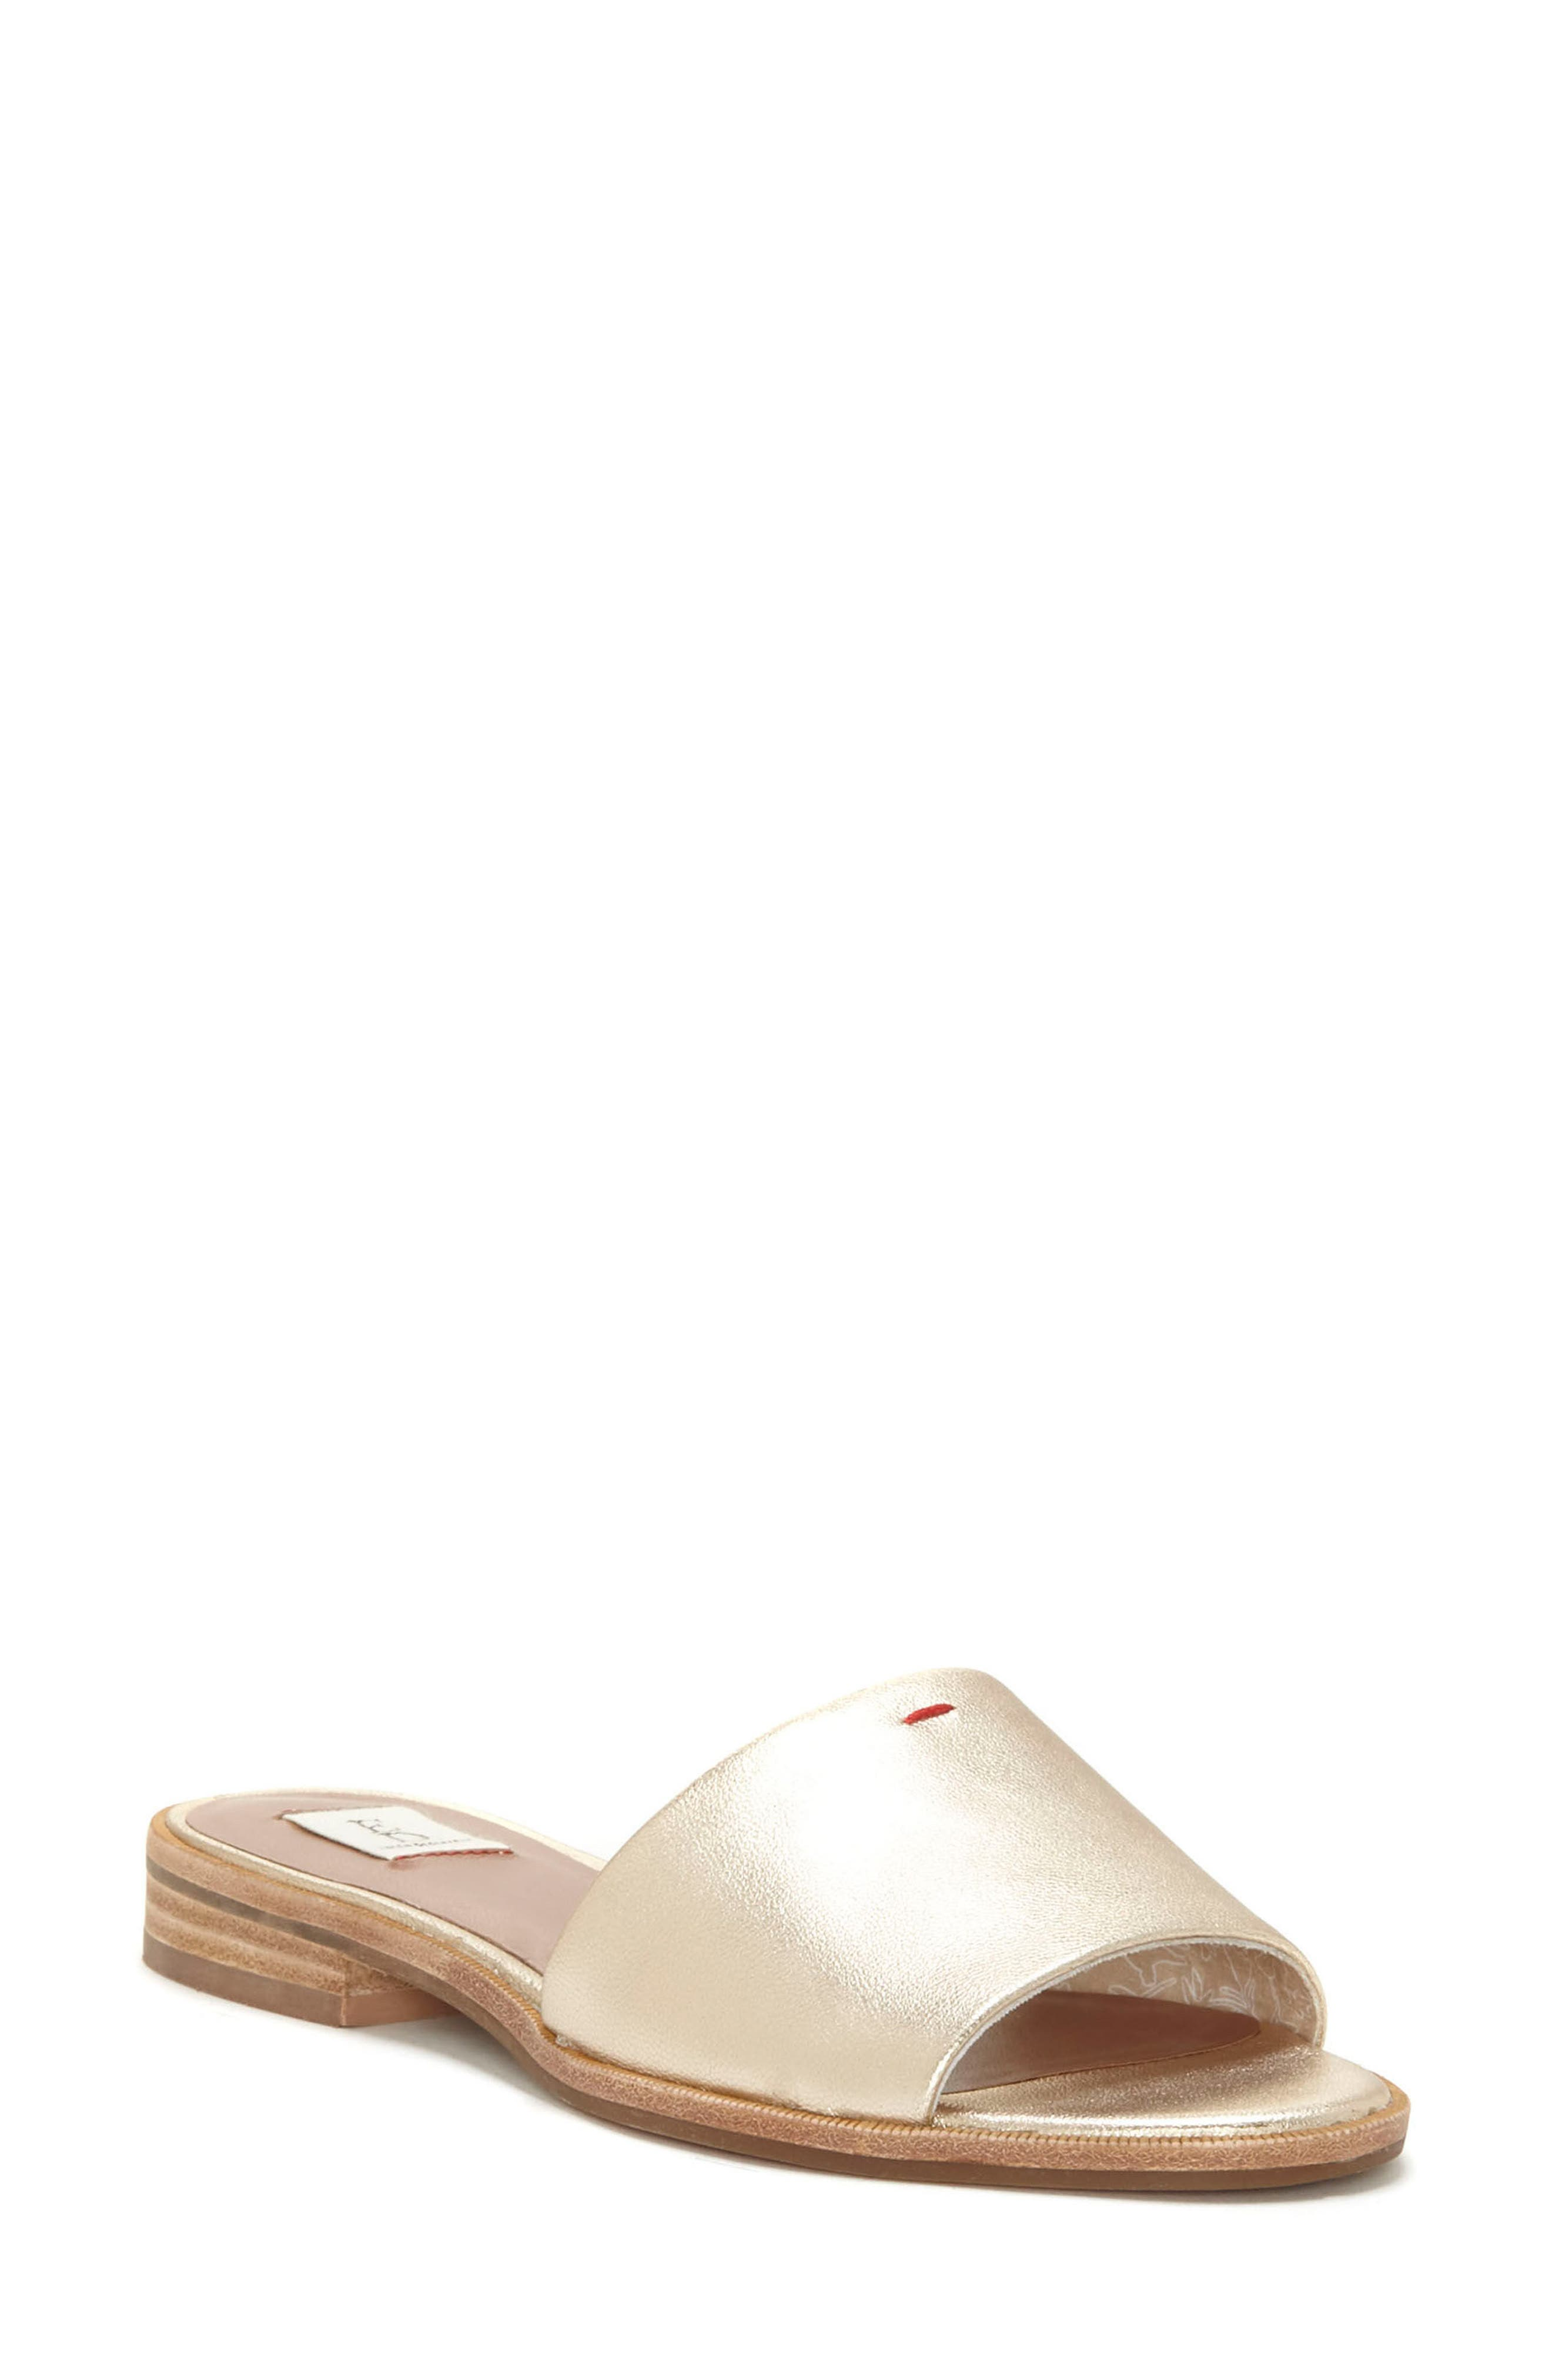 Solay Sandal,                         Main,                         color, Prosecco Leather